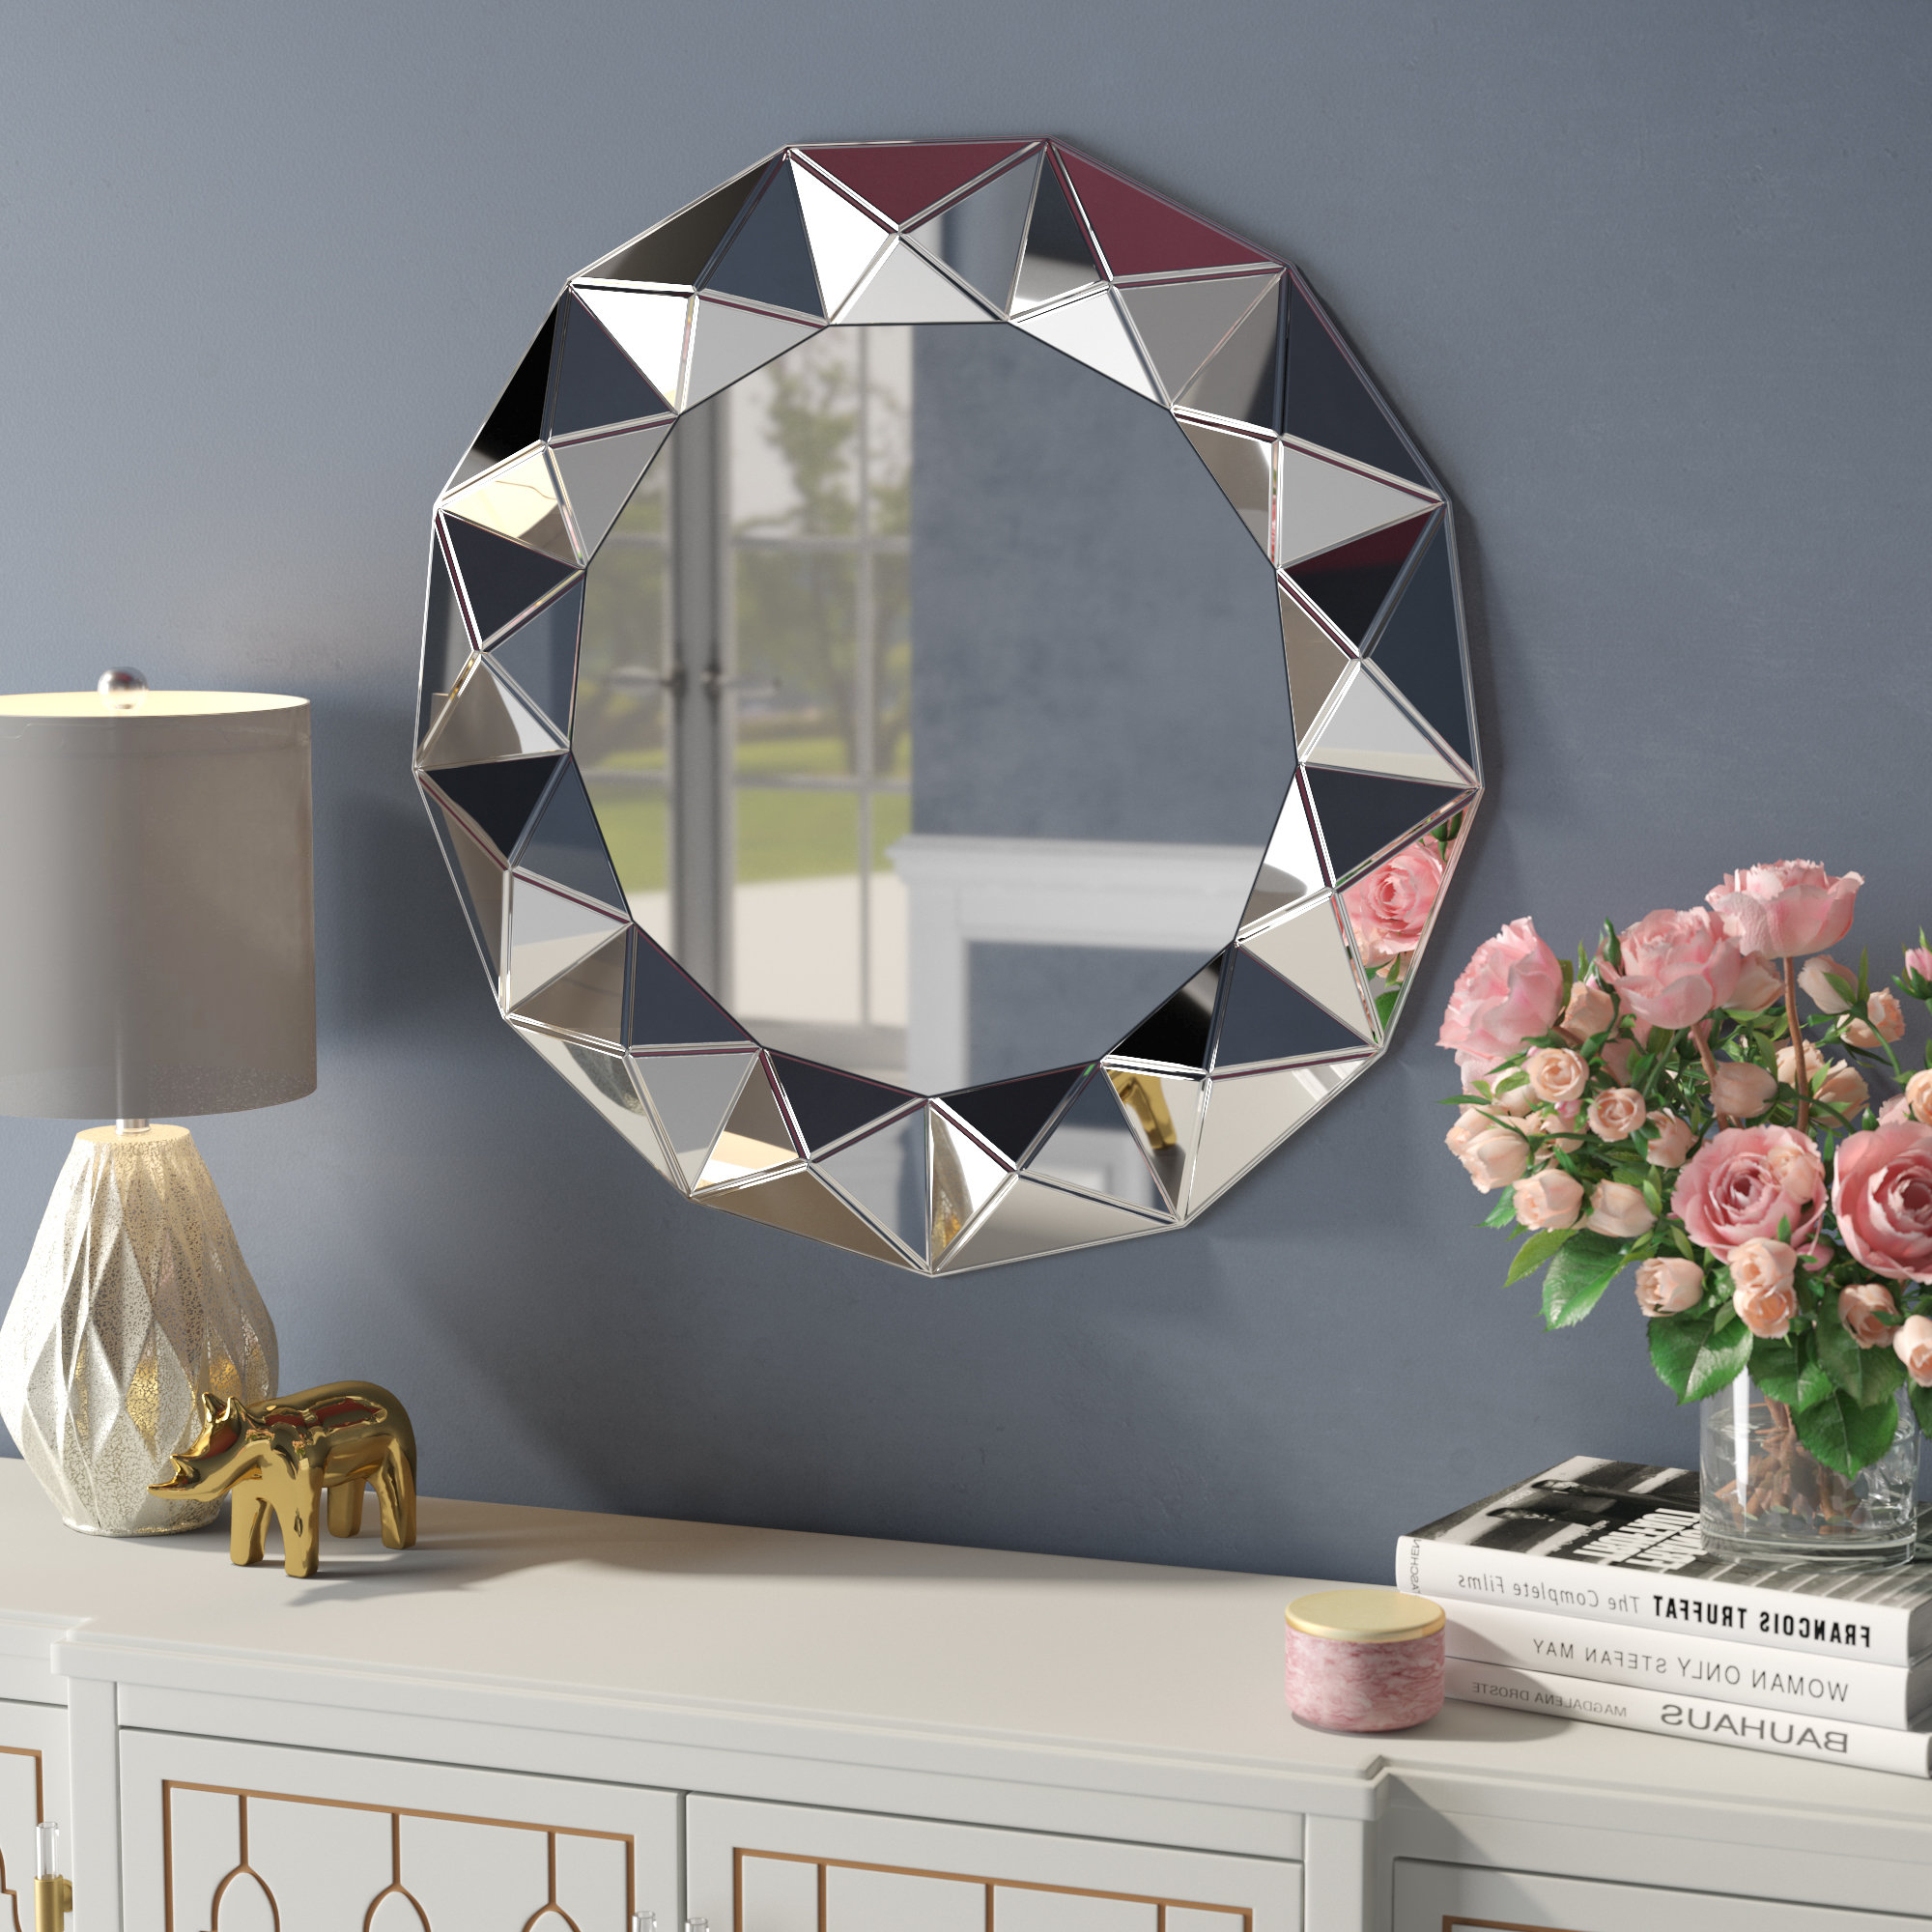 Round Decorative Wall Mirrors Intended For Most Popular Traditional Round Decorative Wall Mirror (View 2 of 20)